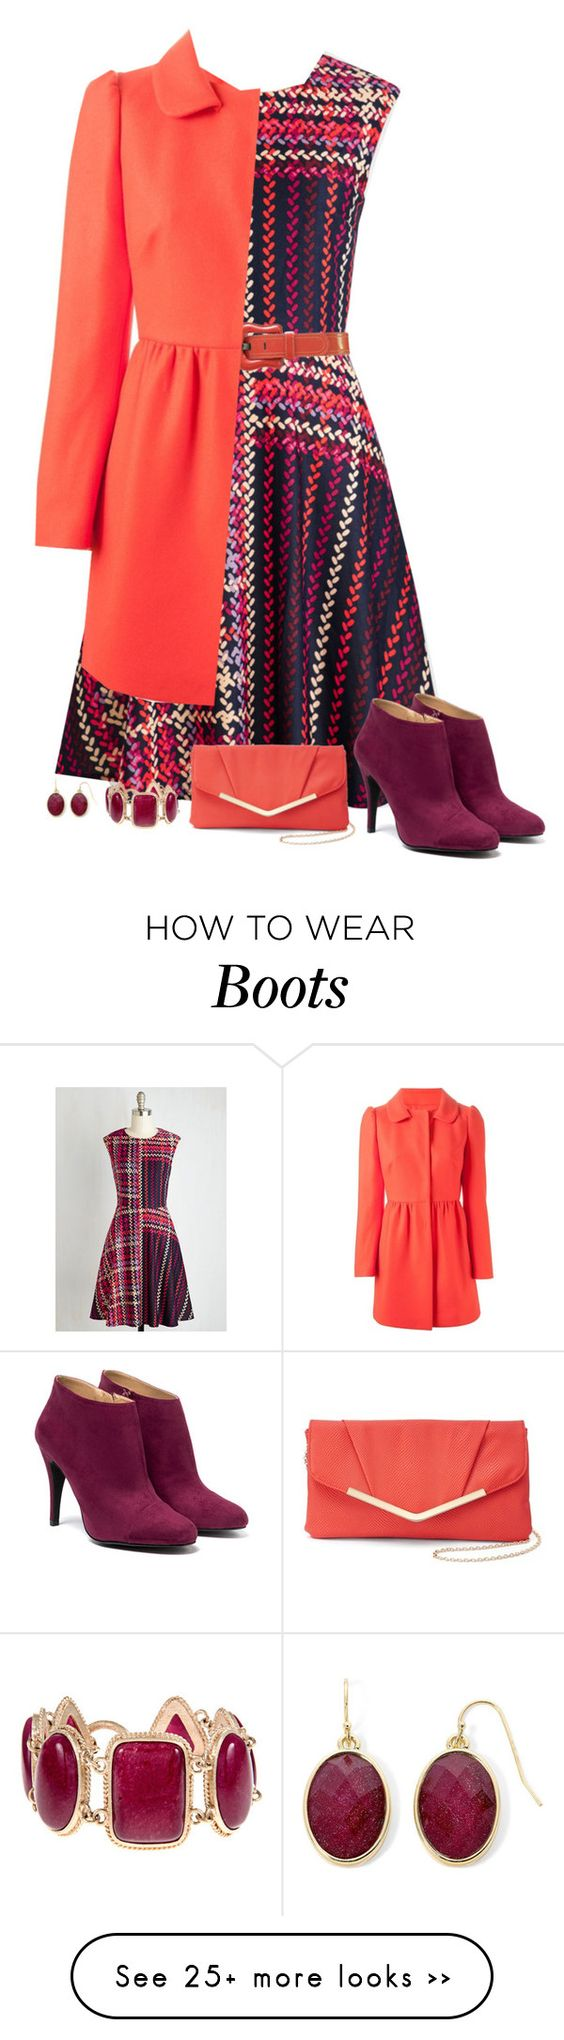 """""""berry & coral"""" by divacrafts on Polyvore featuring Fendi, RED Valentino, Liz Claiborne and Original"""